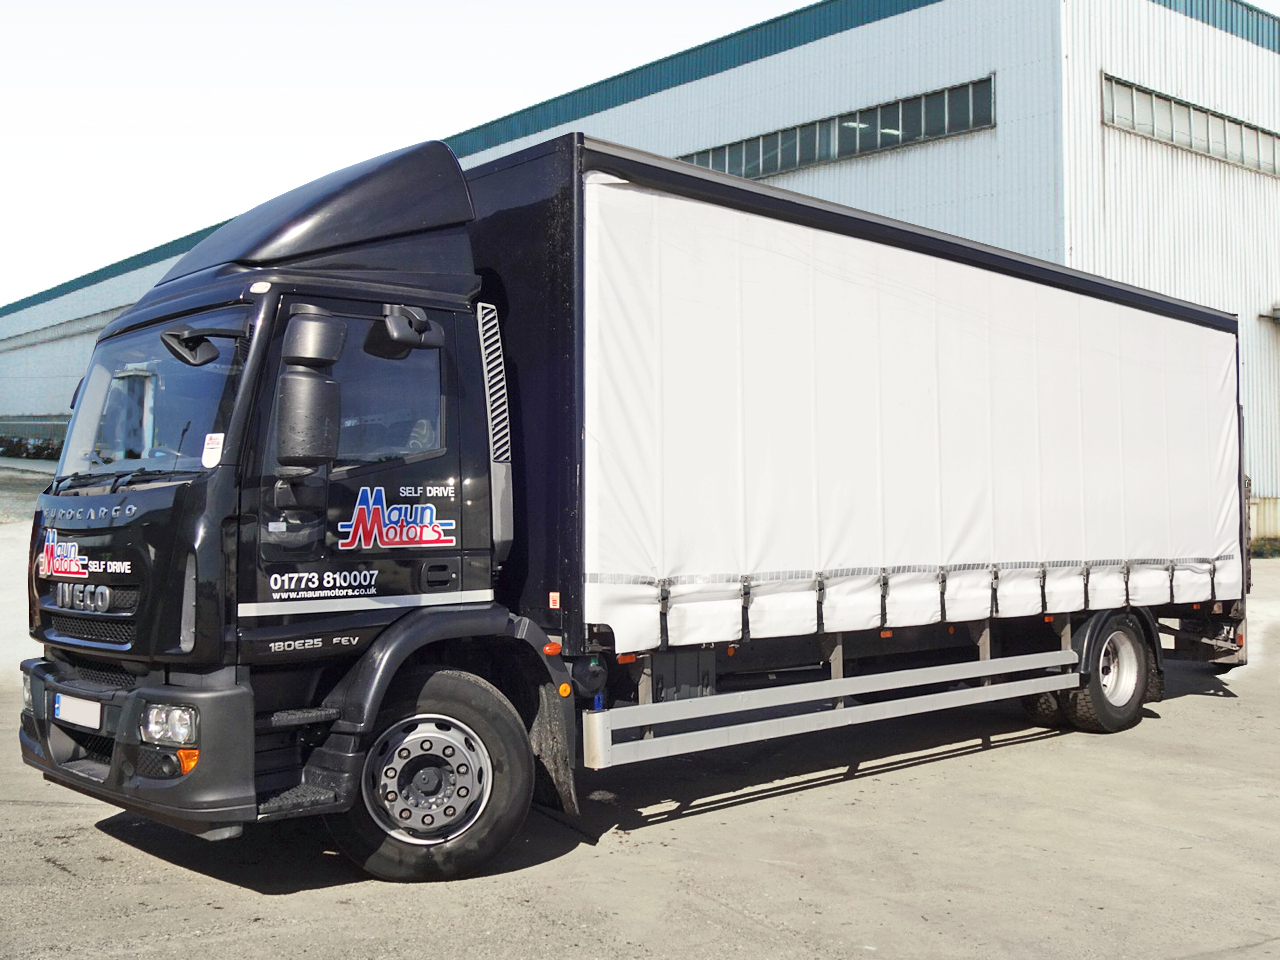 18t Curtain Side Truck with Tail Lift - Day Cab